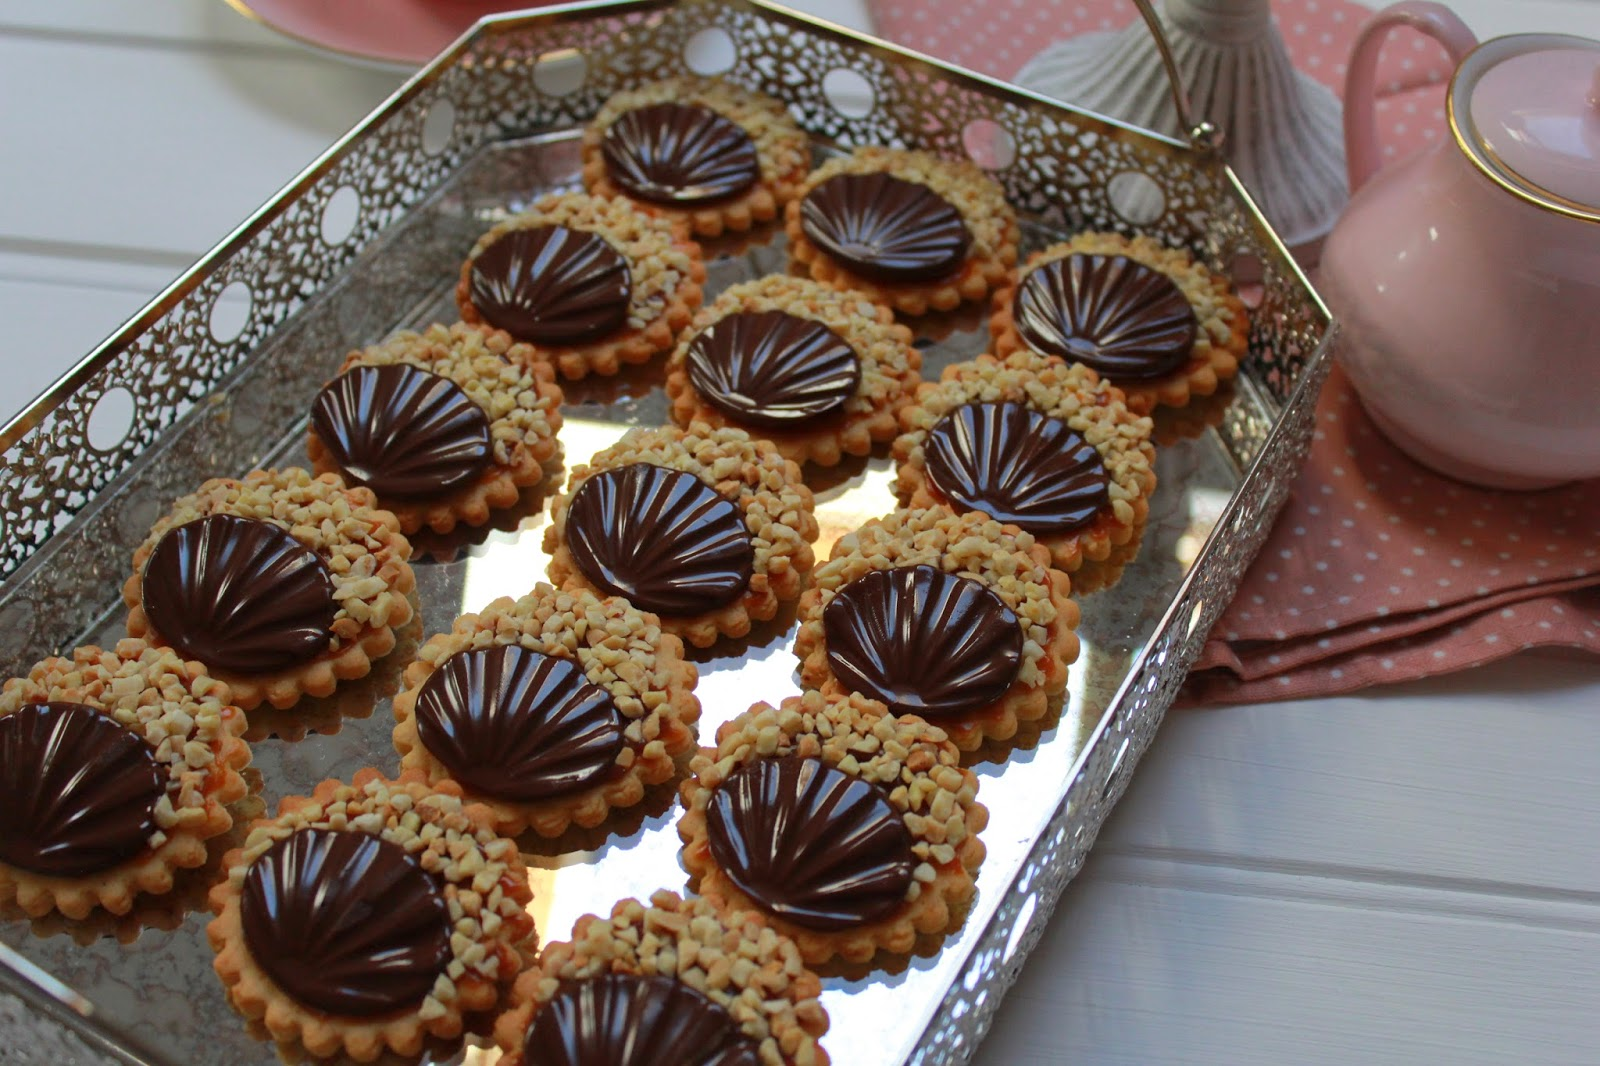 galletas-chocolate-praliné-y-dulce-de-leche